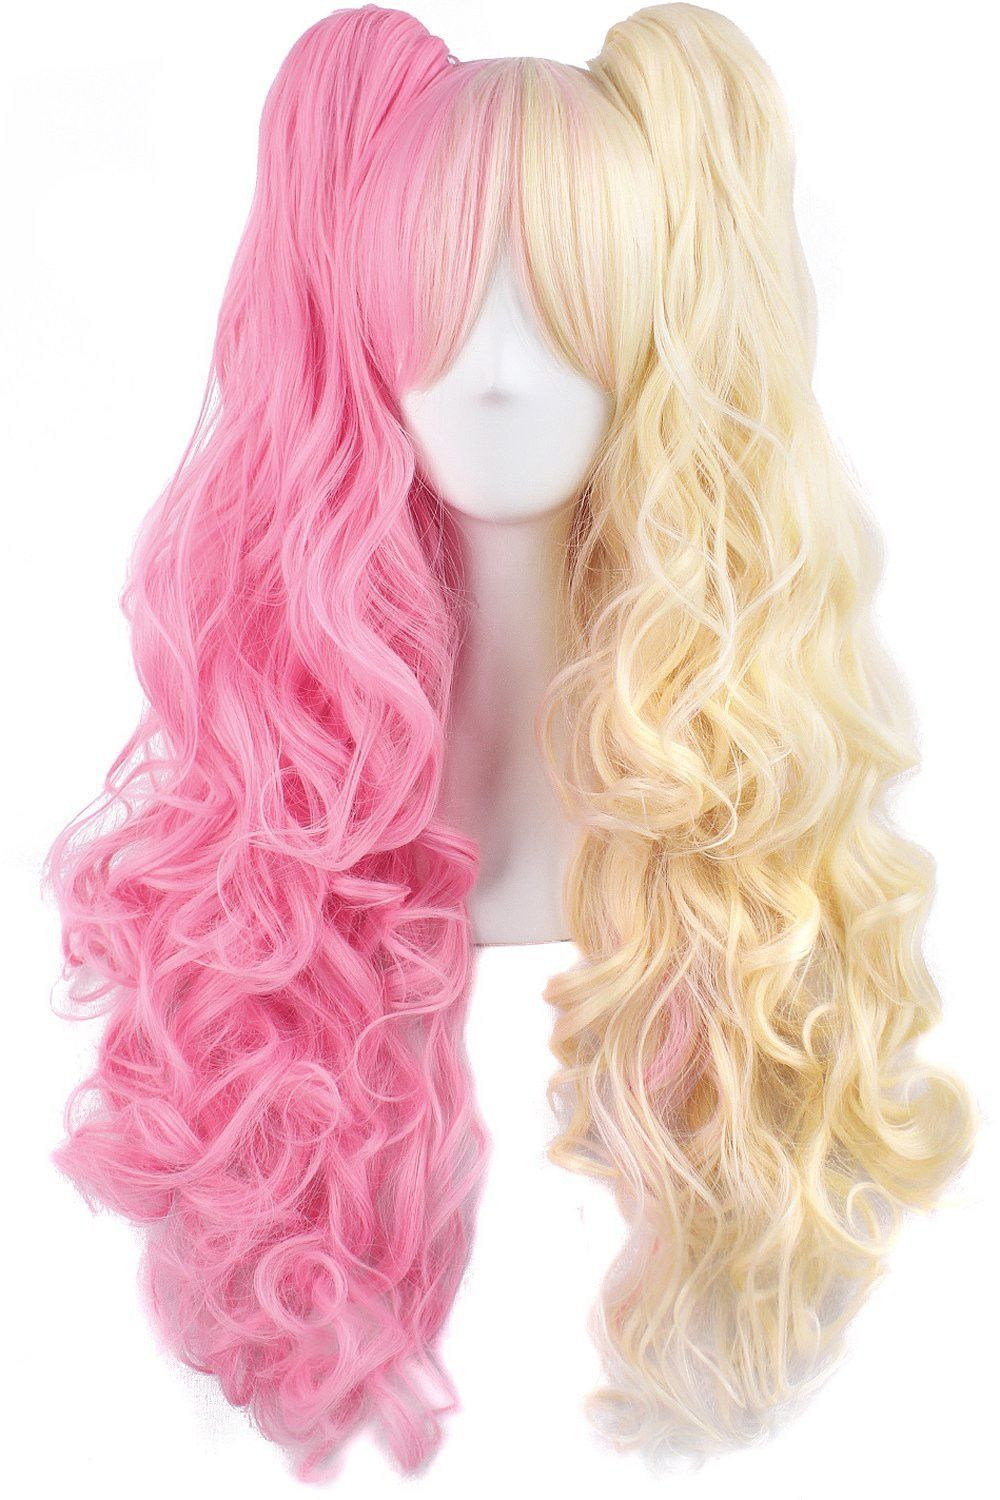 Long curly clip on ponytails anime cosplay wig Clip in